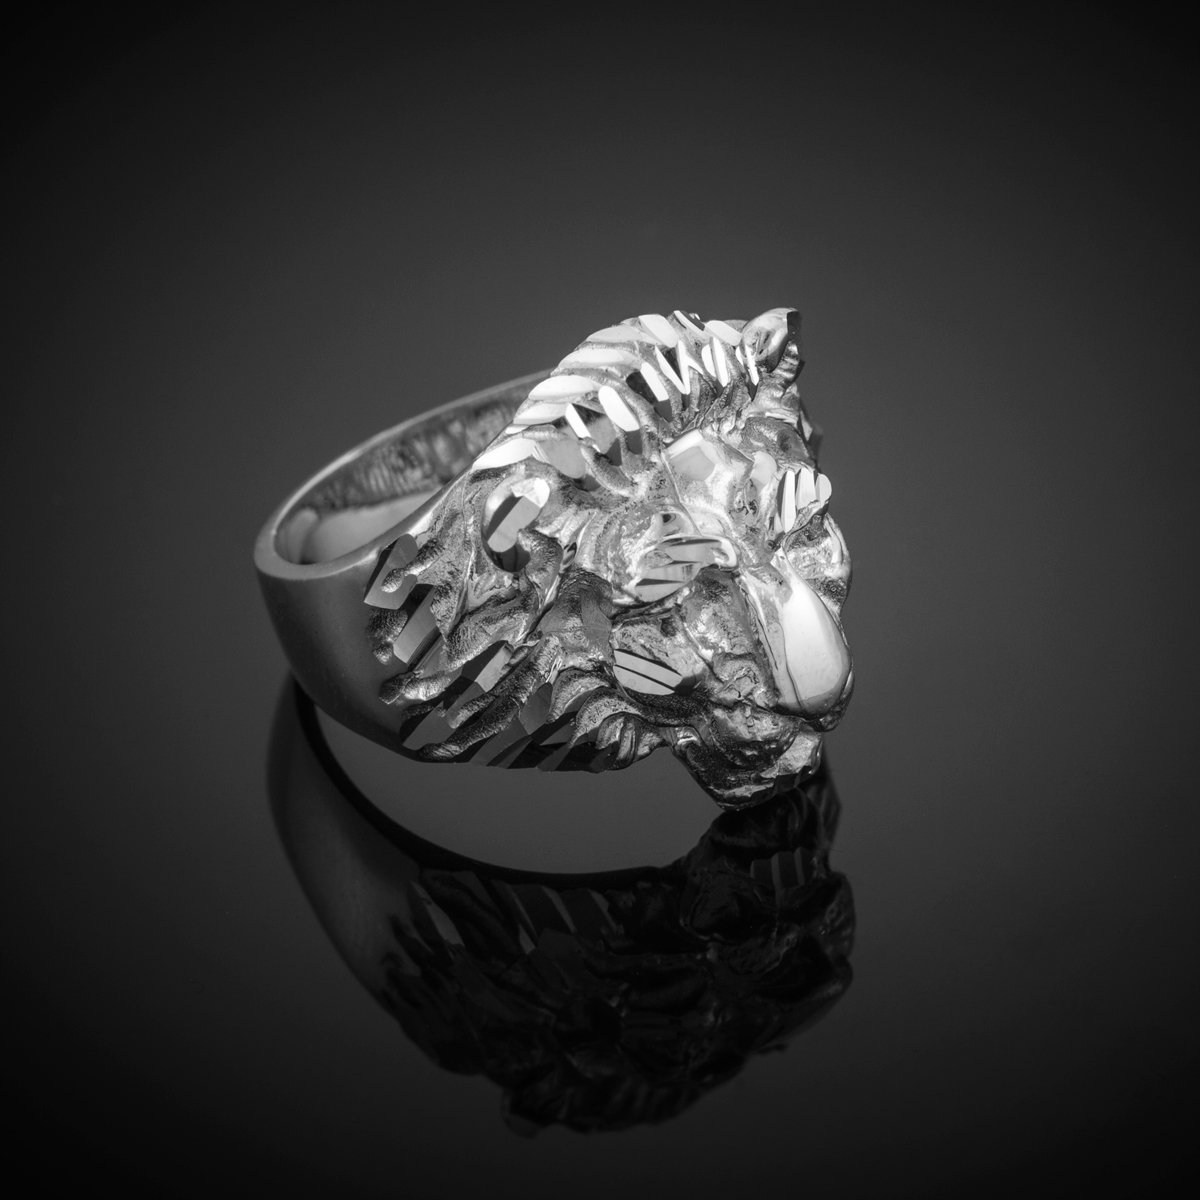 Fine 925 Sterling Silver Textured Band Lion Head Ring for Men (Size 10.5) by Men's Fine Jewelry (Image #2)